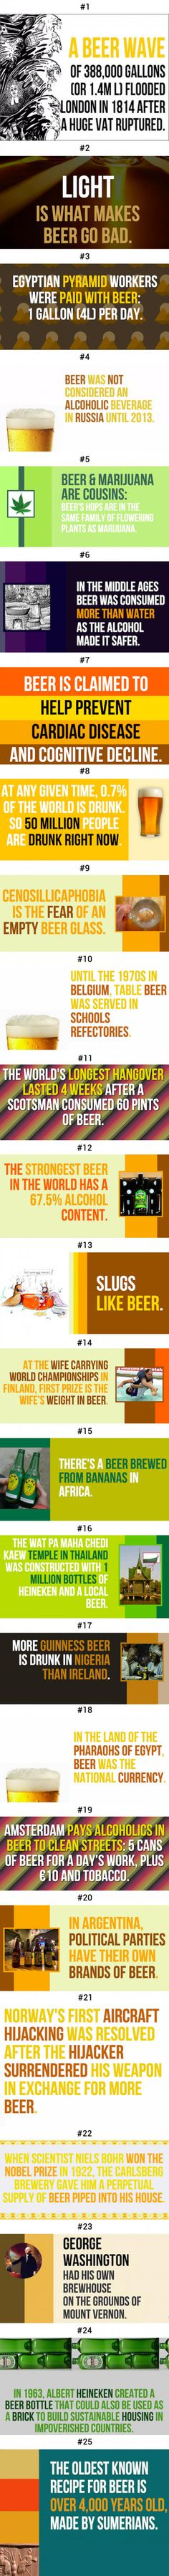 25 Fun Facts About Our Favorite Beer